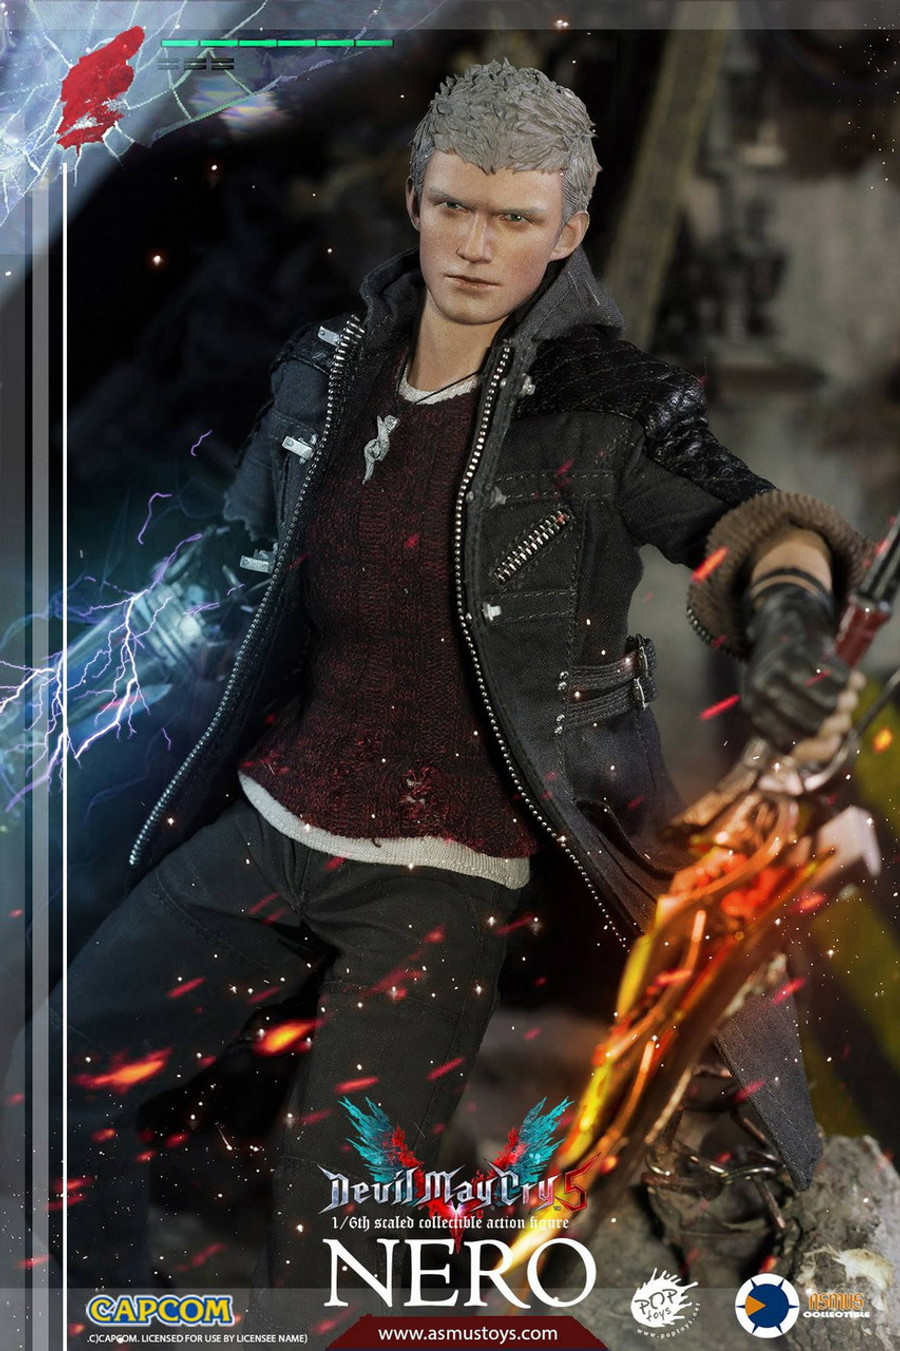 Asmus Toys - The Devil May Cry Series: Nero DMC V